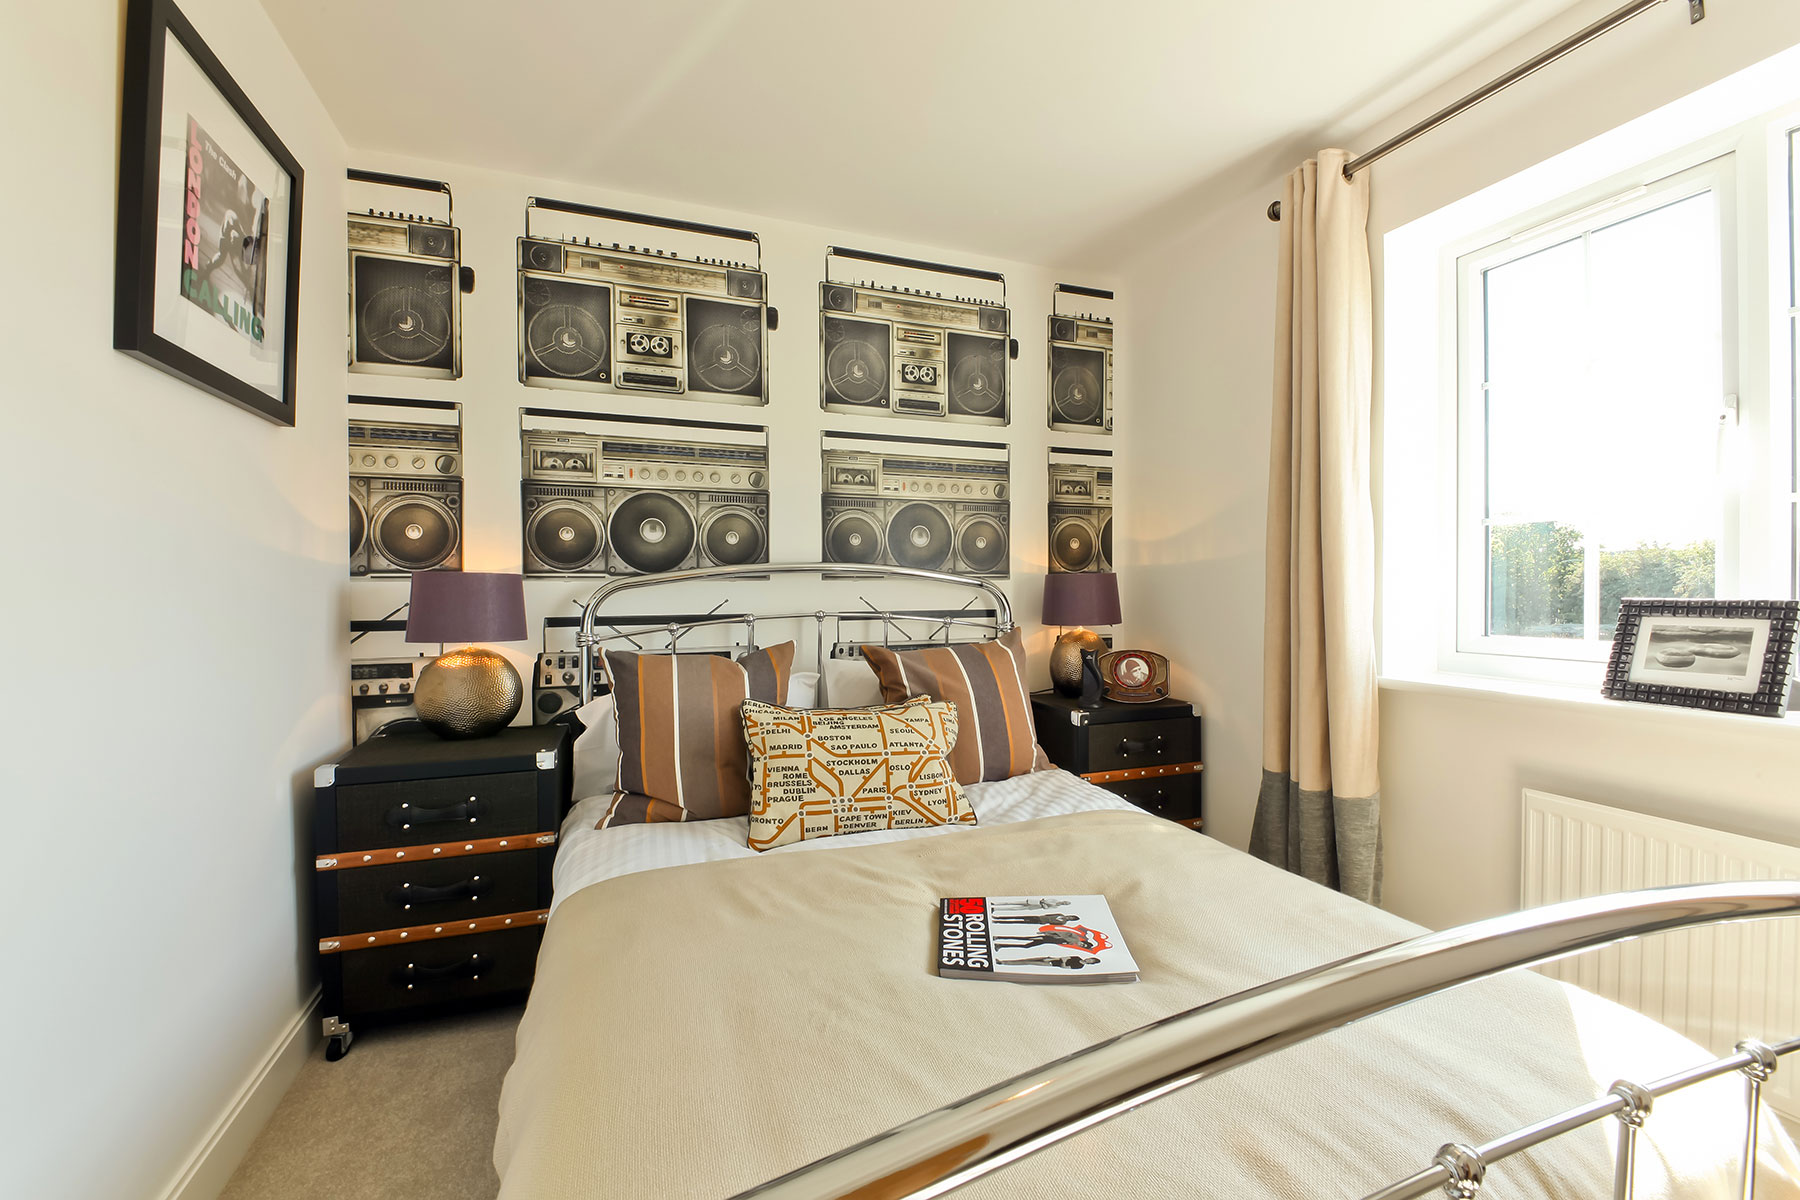 Taylor Wimpey - typical third bedroom